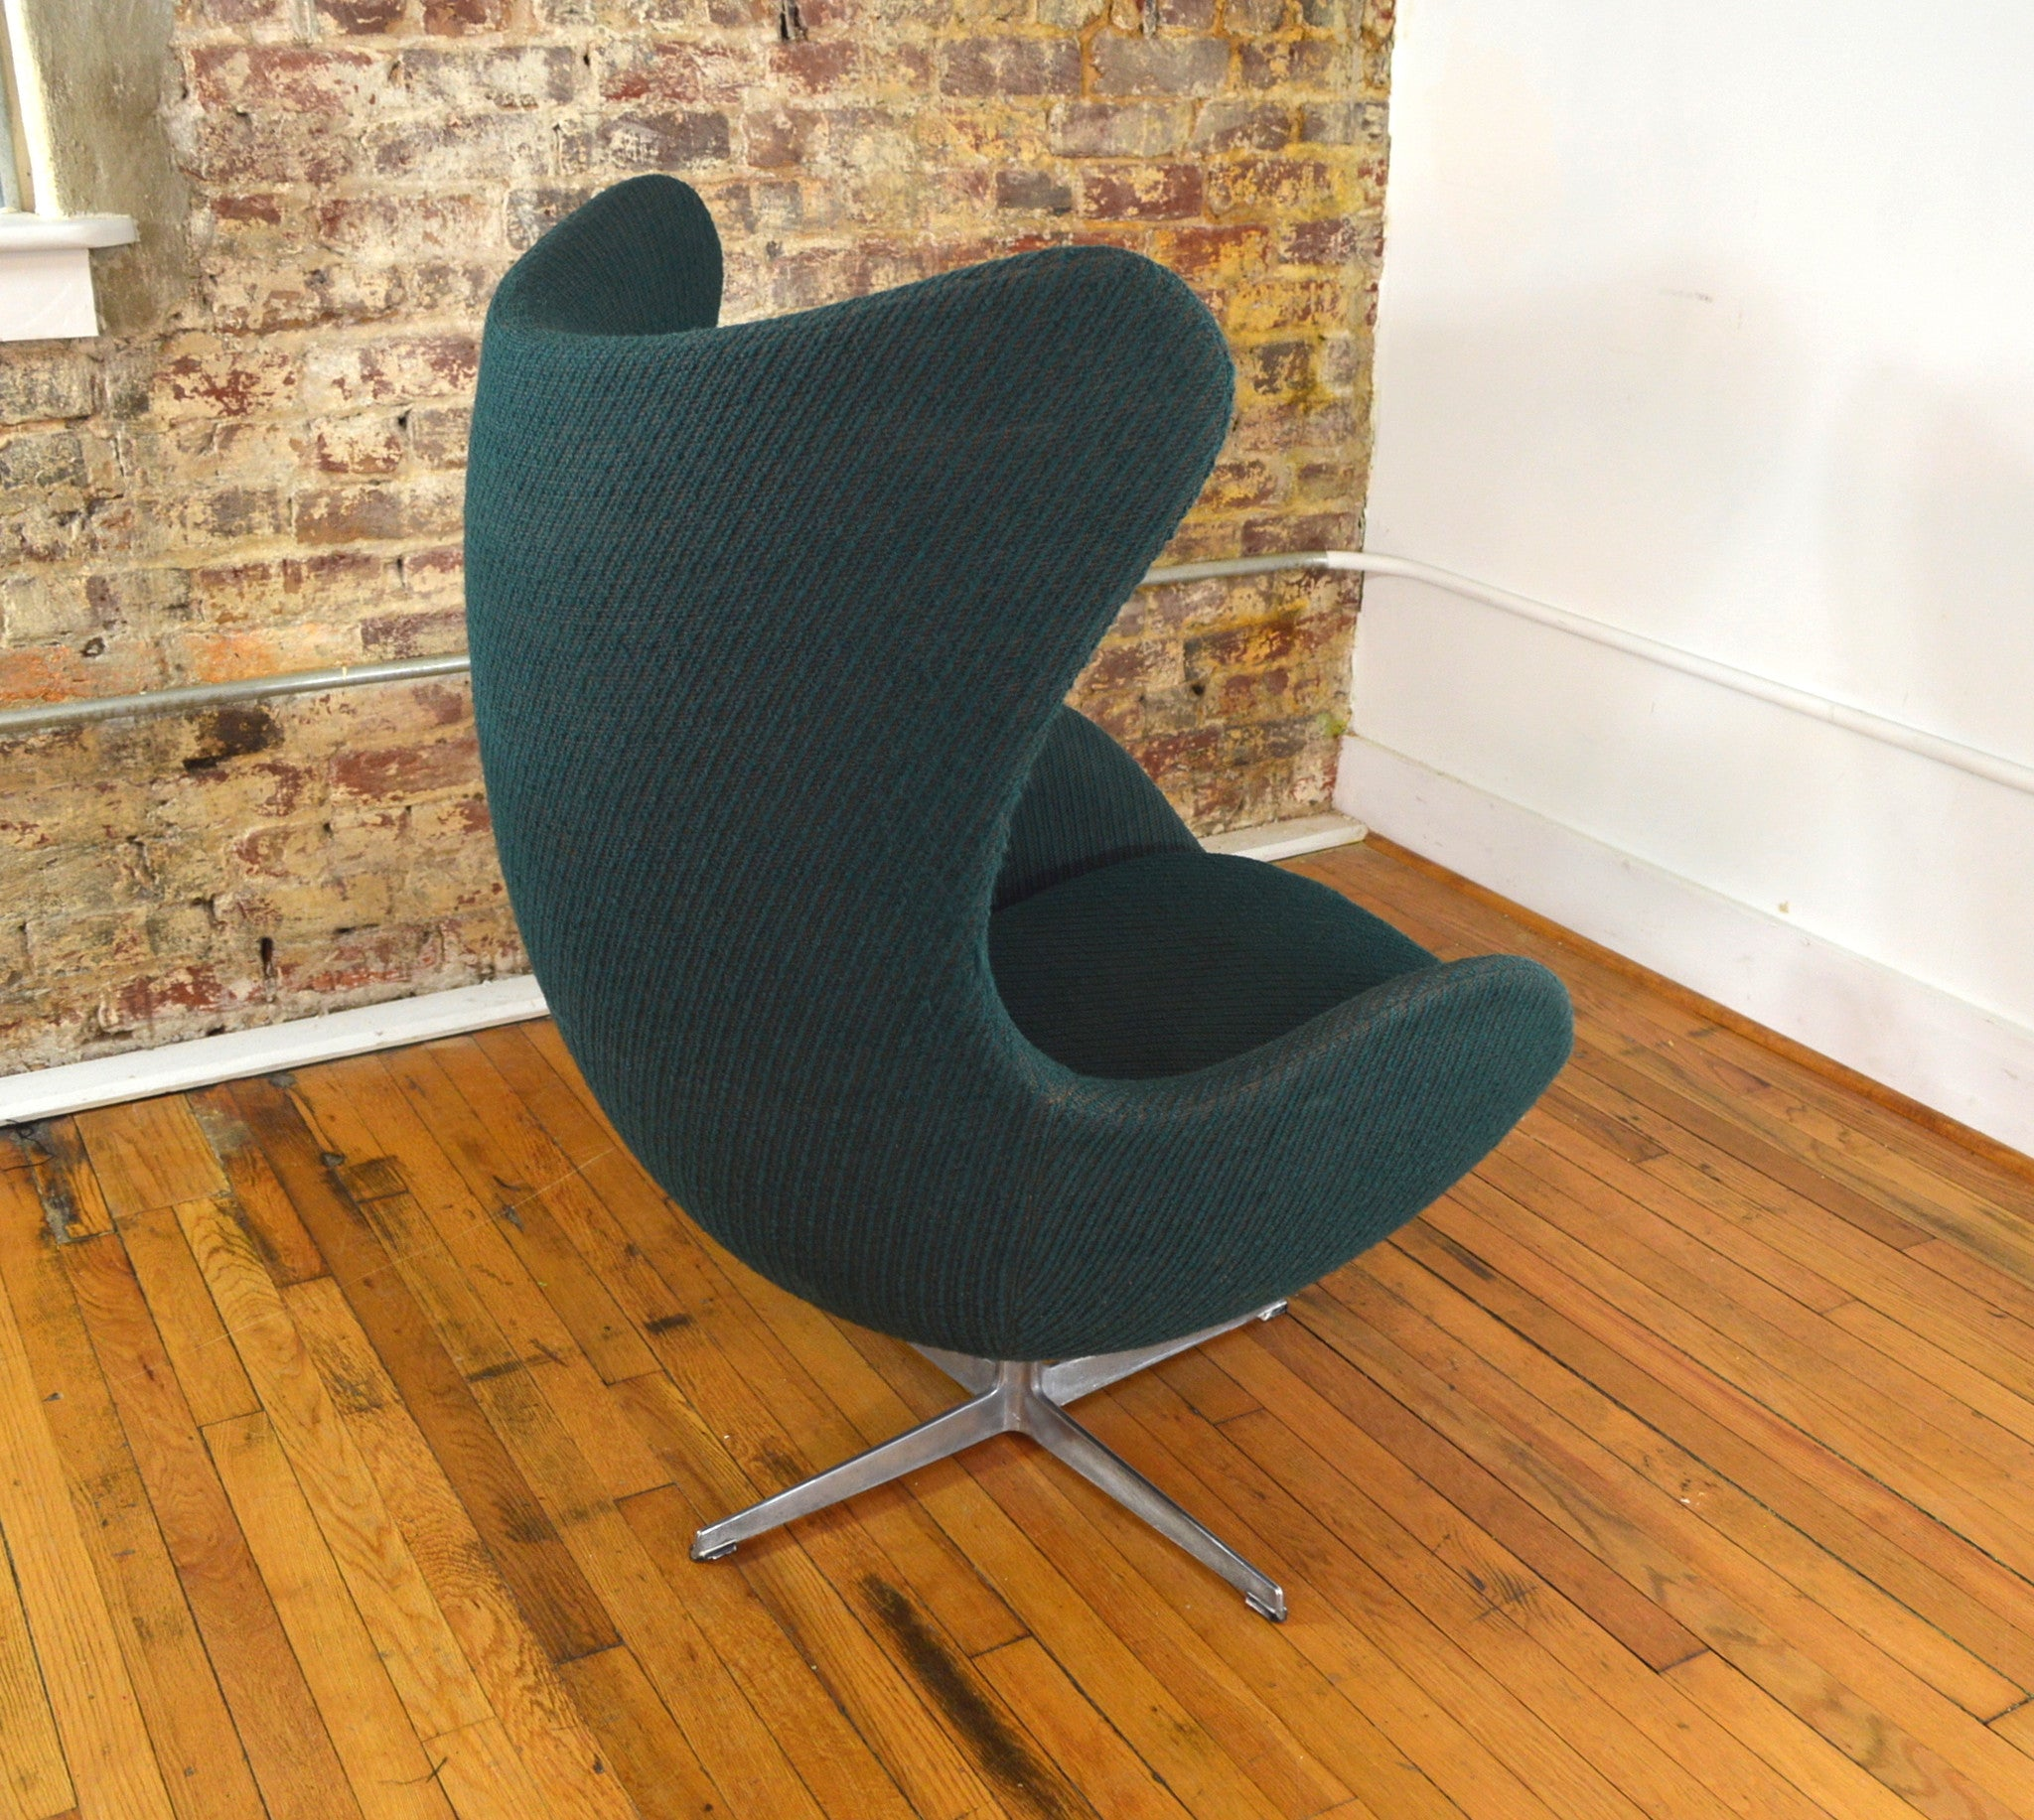 Arne jacobsen egg chair original vintage for fritz hansen for Egg chair original